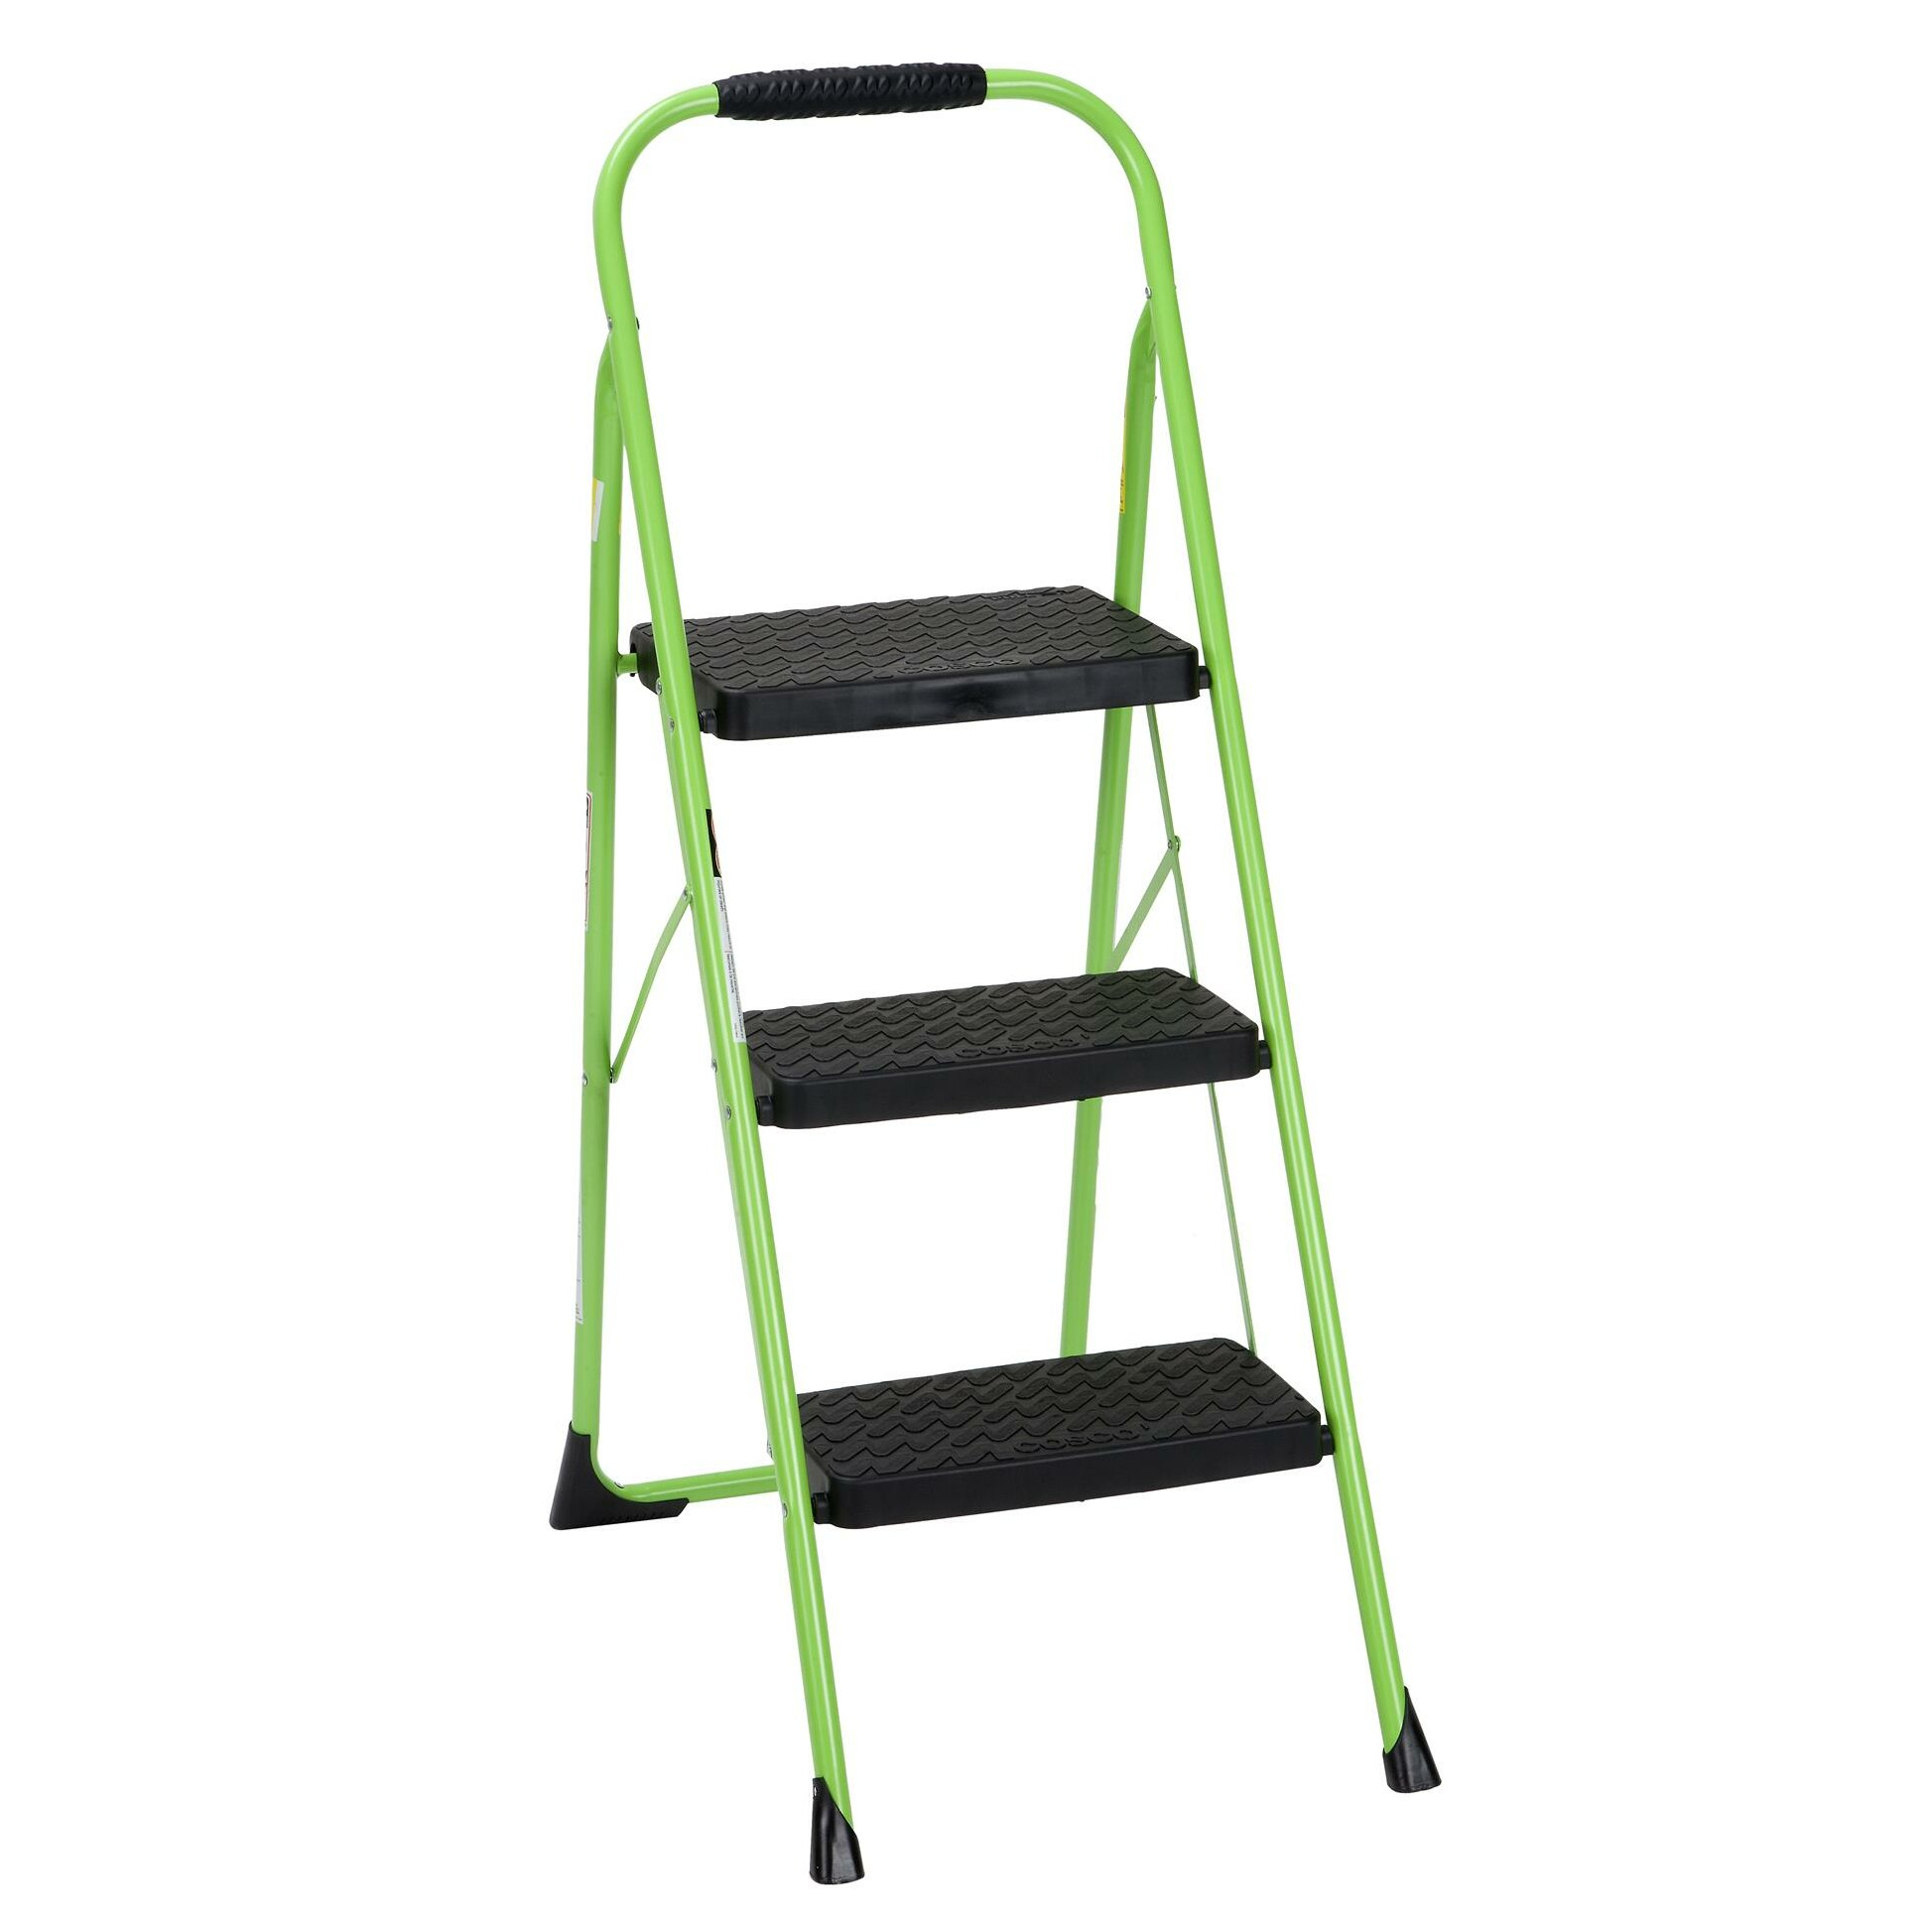 Cosco Home And Office 3 Step Steel Big Folding Step Stool